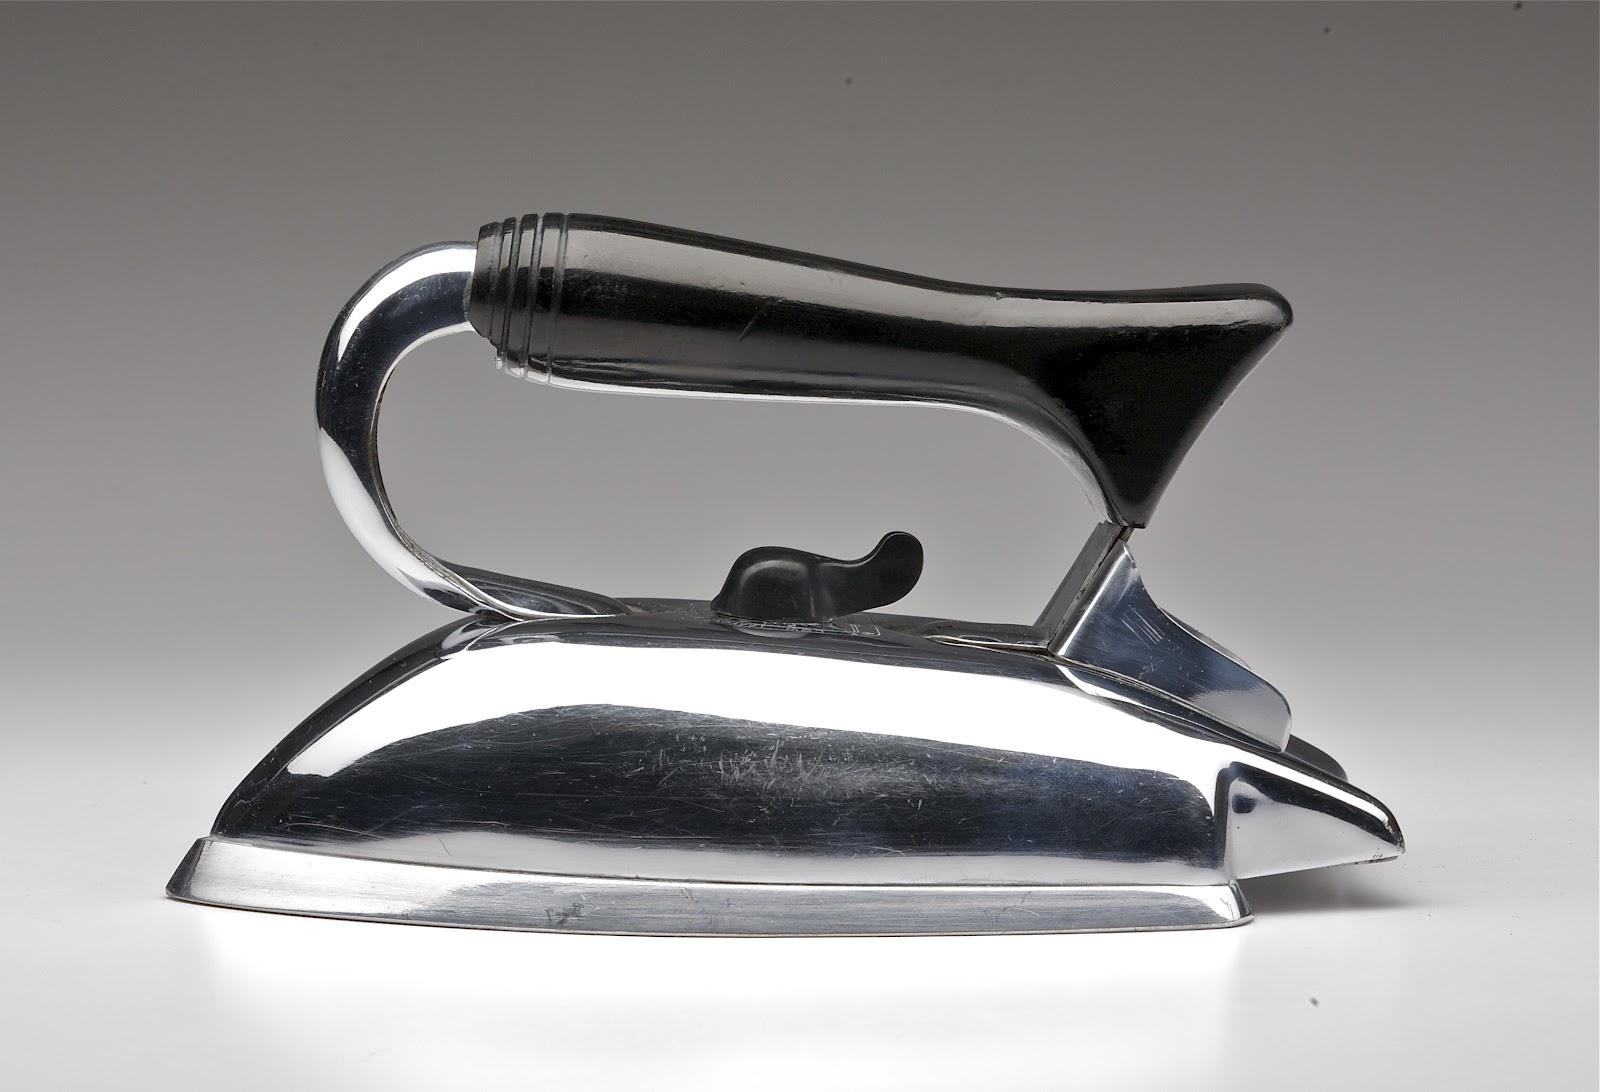 Vintage Electric Irons 112